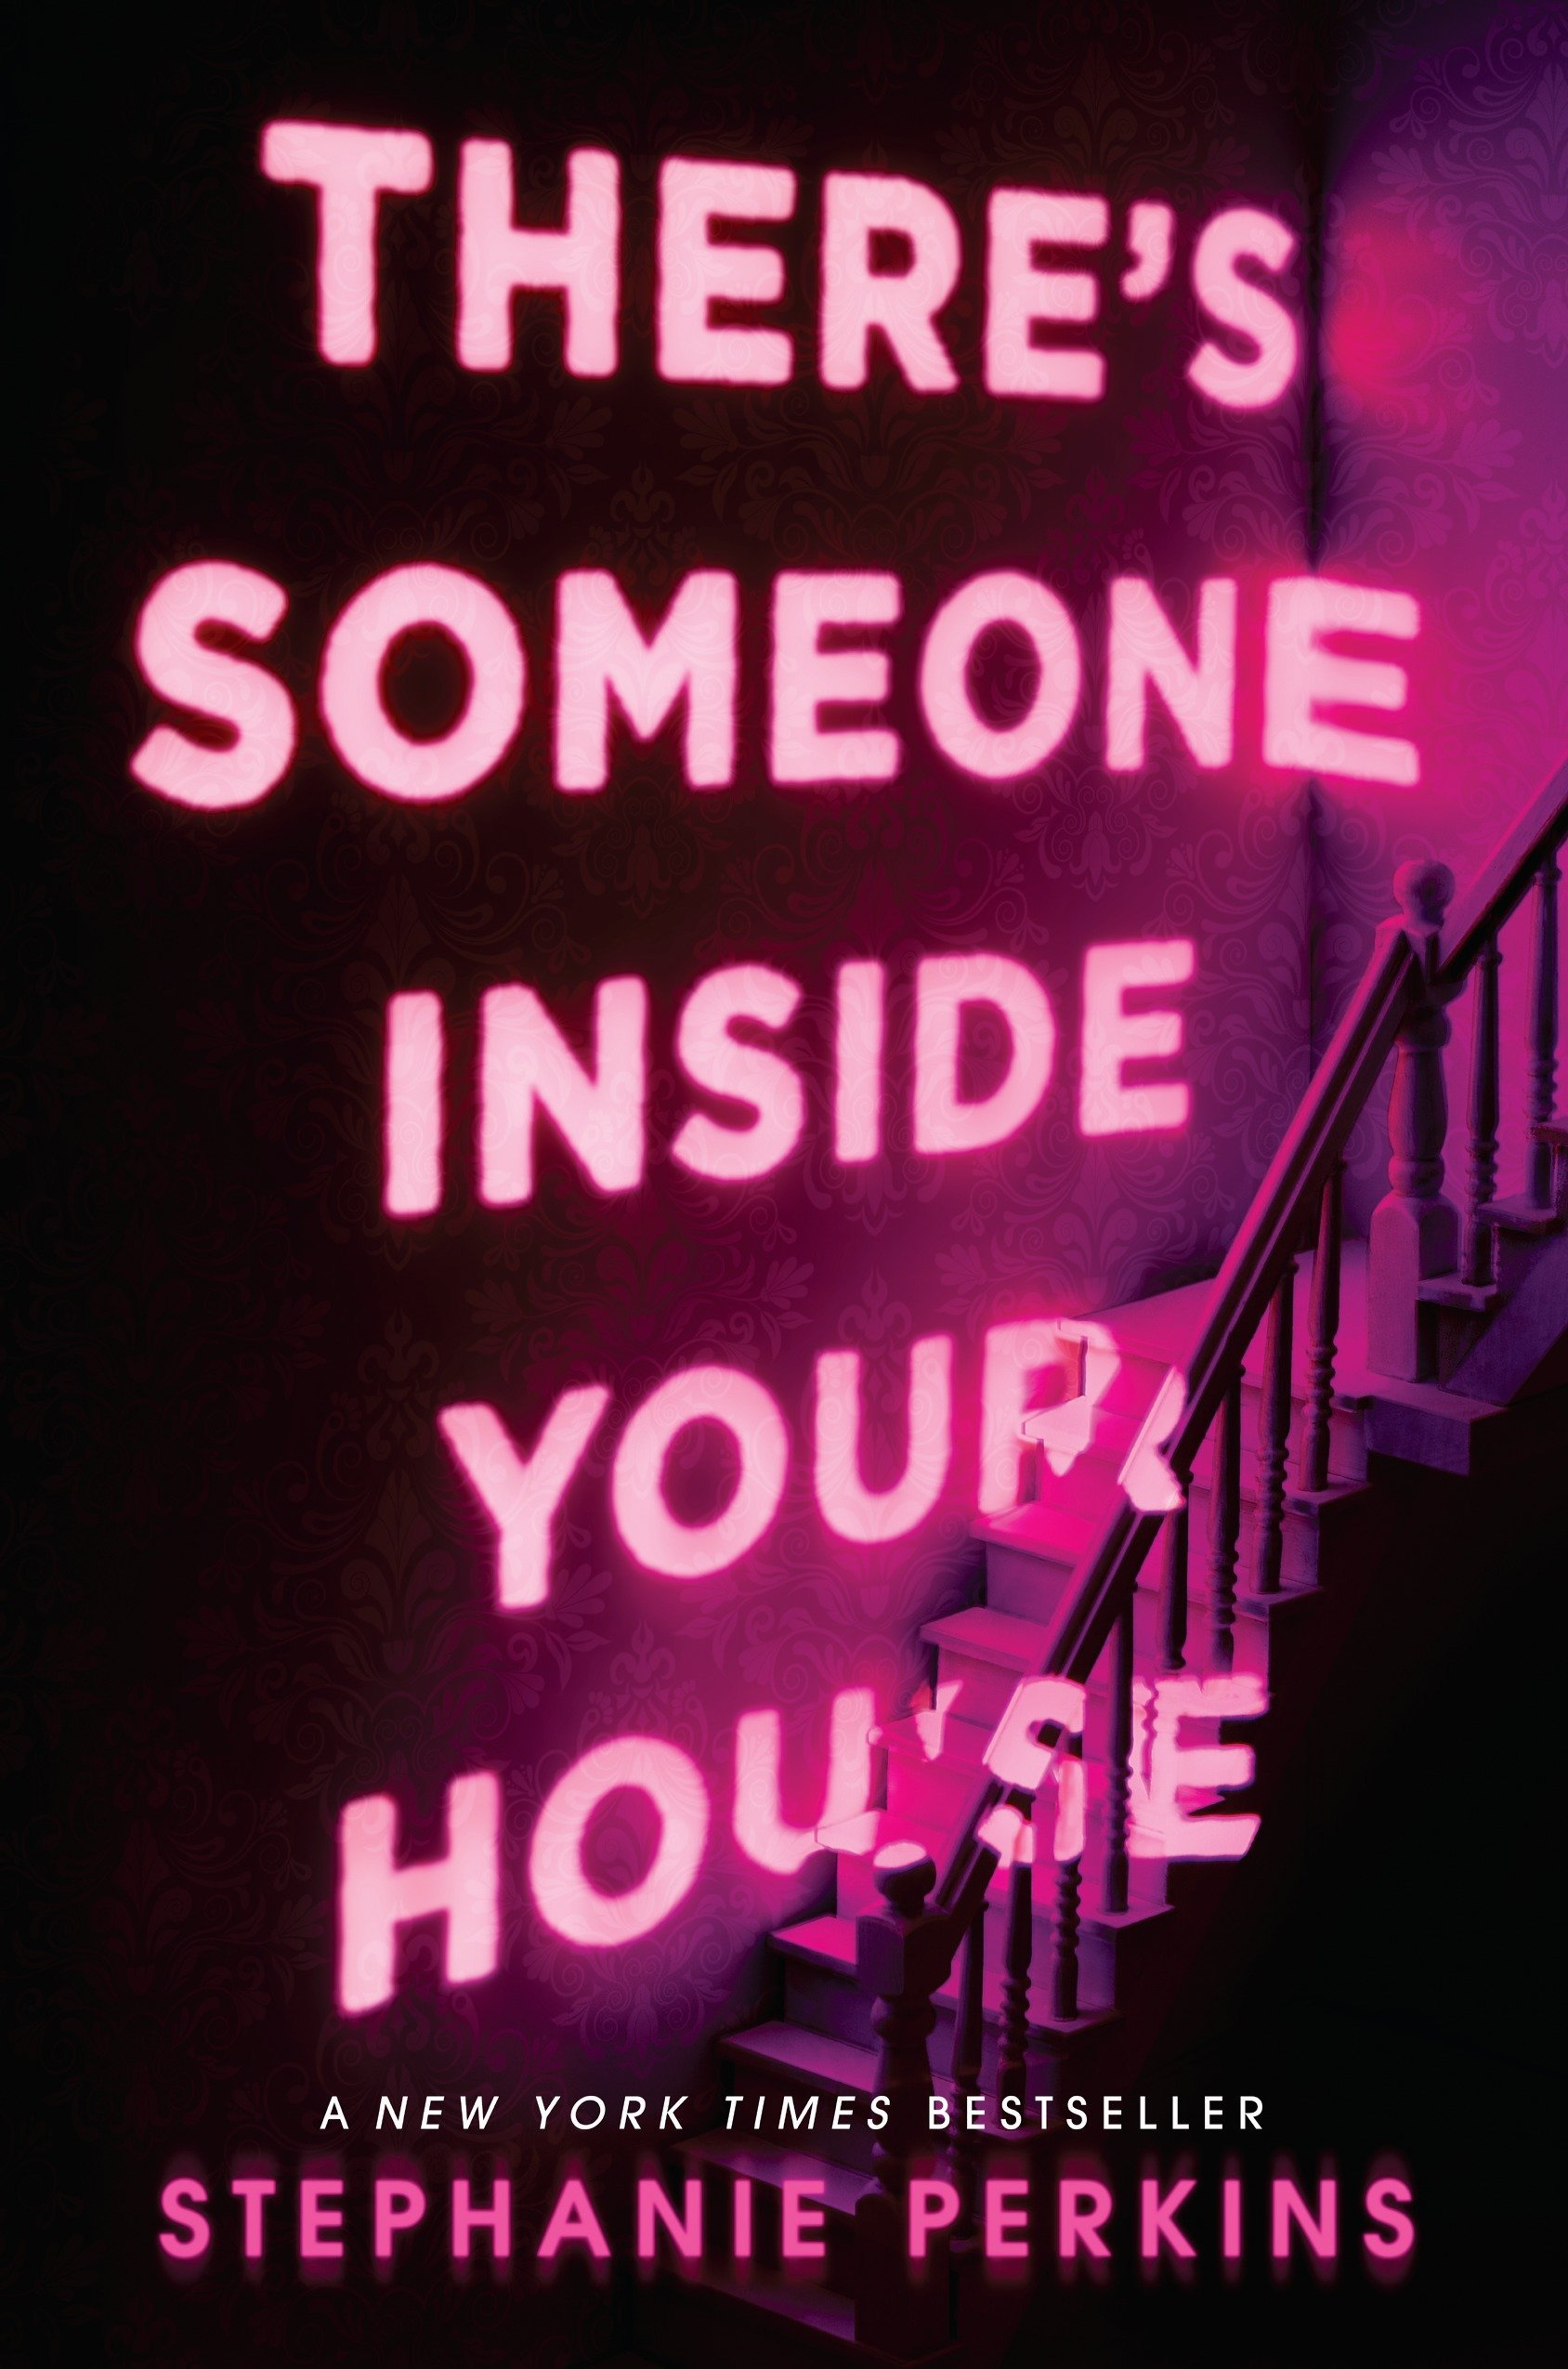 There's Someone Inside Your House: Amazon.co.uk: Perkins, Stephanie:  9780525426011: Books